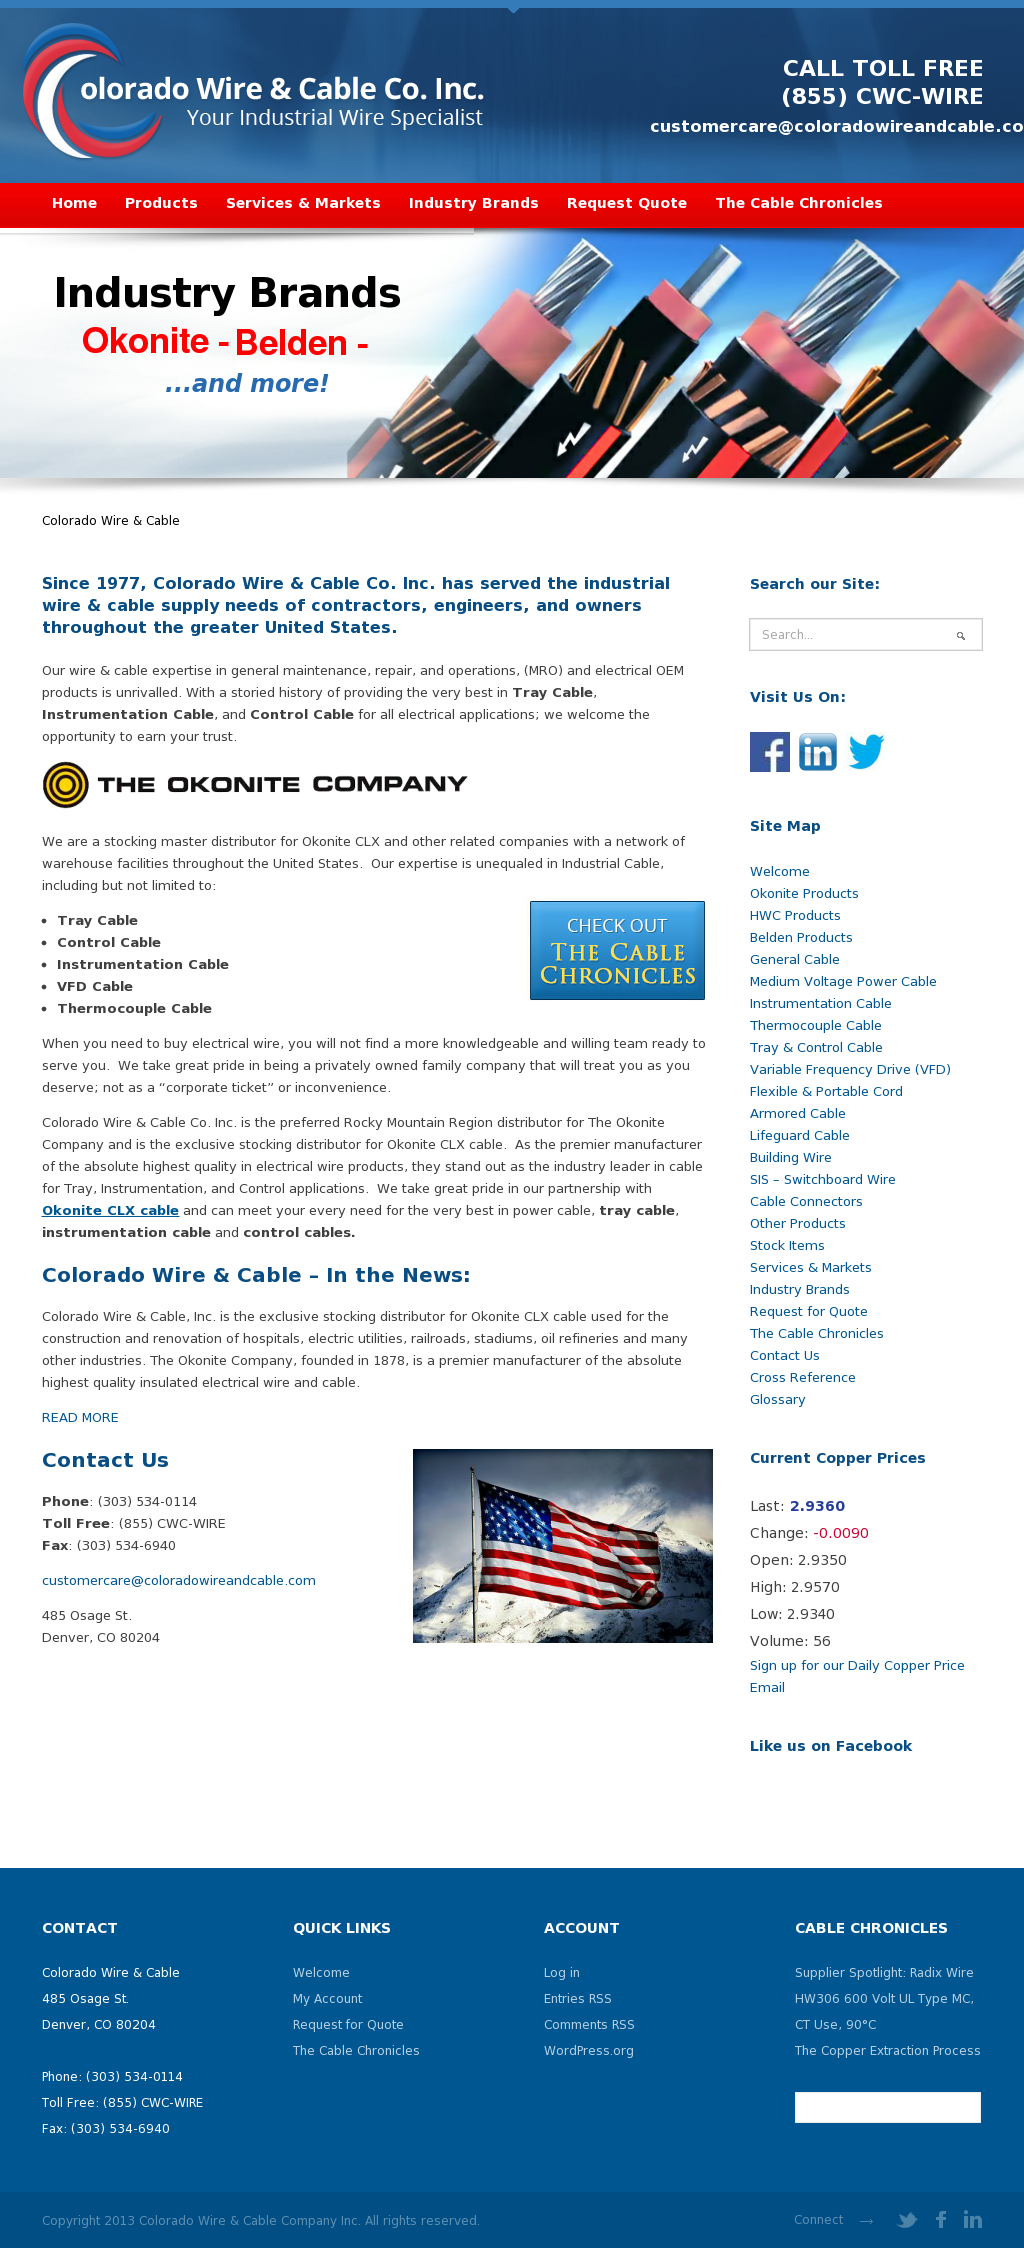 Awesome Anaconda Wire And Cable Company Crest - Wiring Diagram Ideas ...